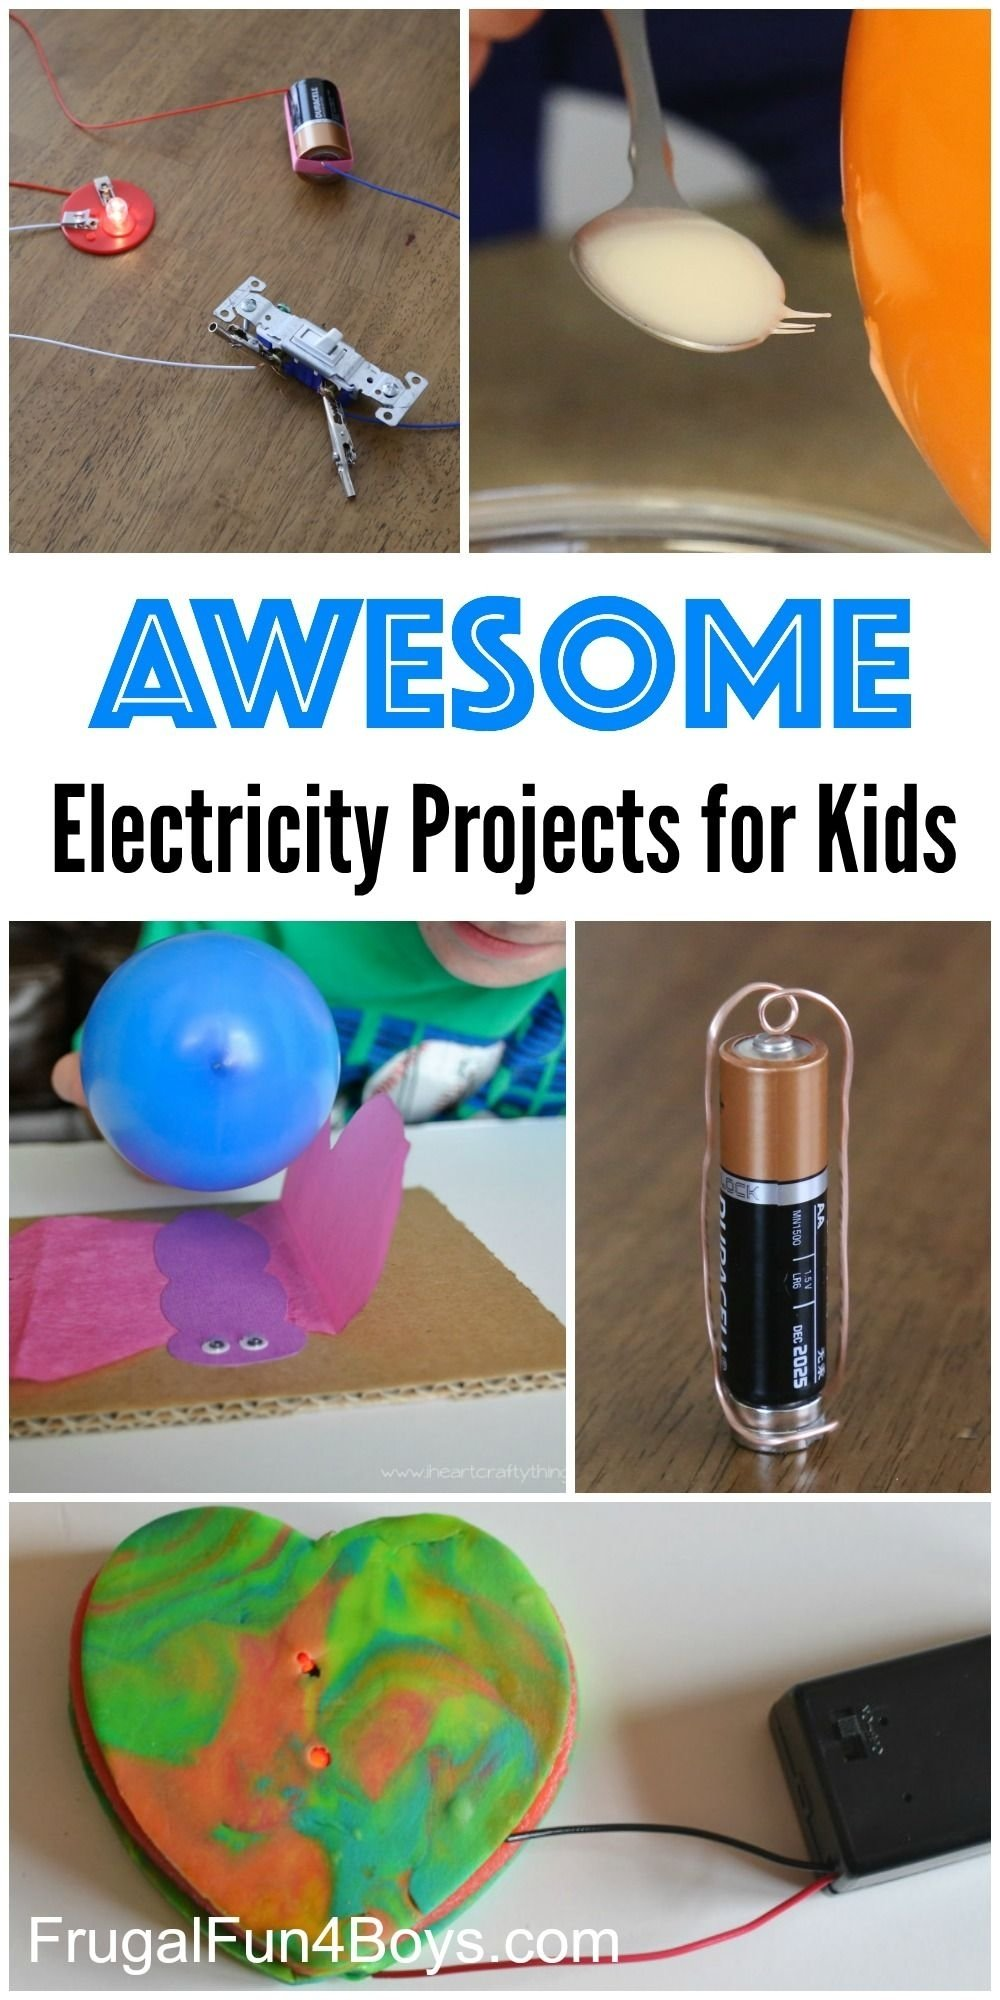 10 Cute Science Project Ideas For Kids 10 awesome electricity projects for kids static electricity 2021